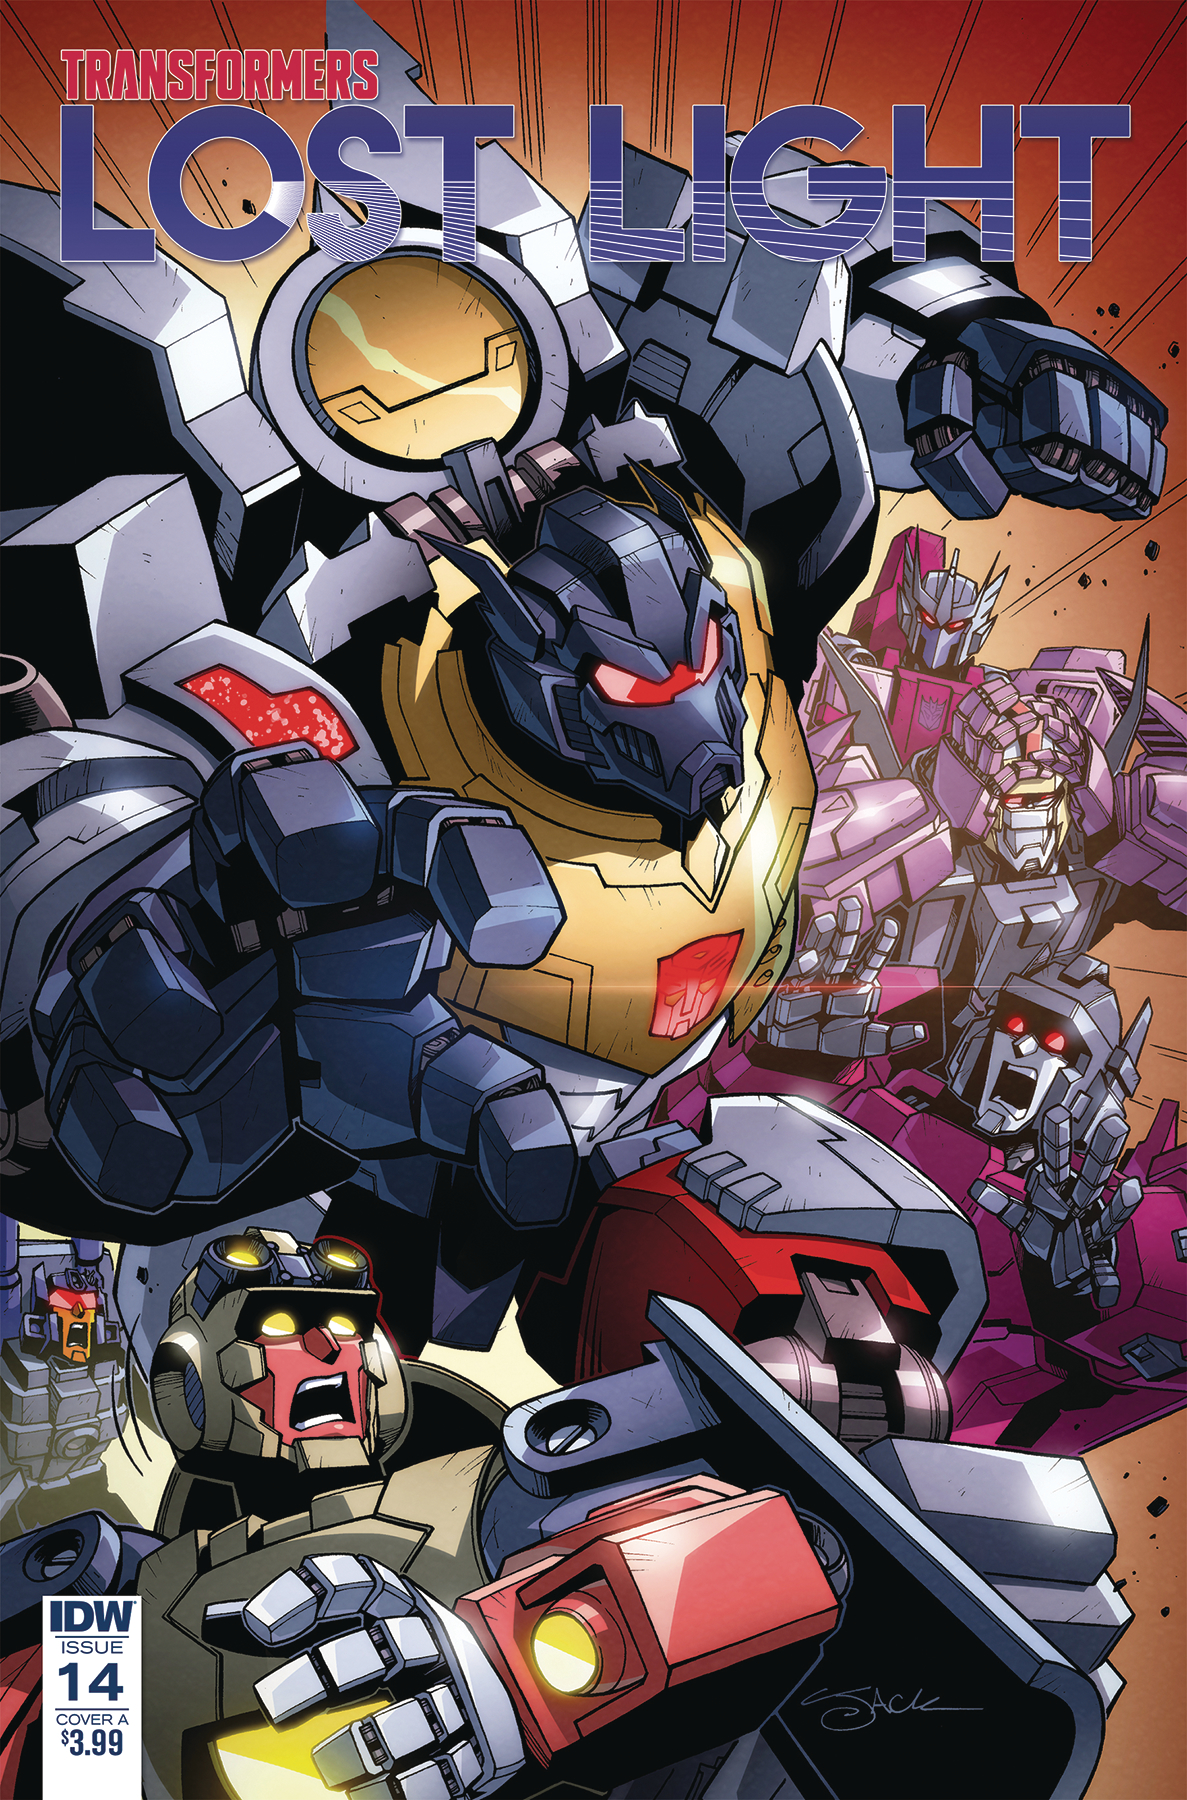 TRANSFORMERS LOST LIGHT #14 CVR A LAWRENCE